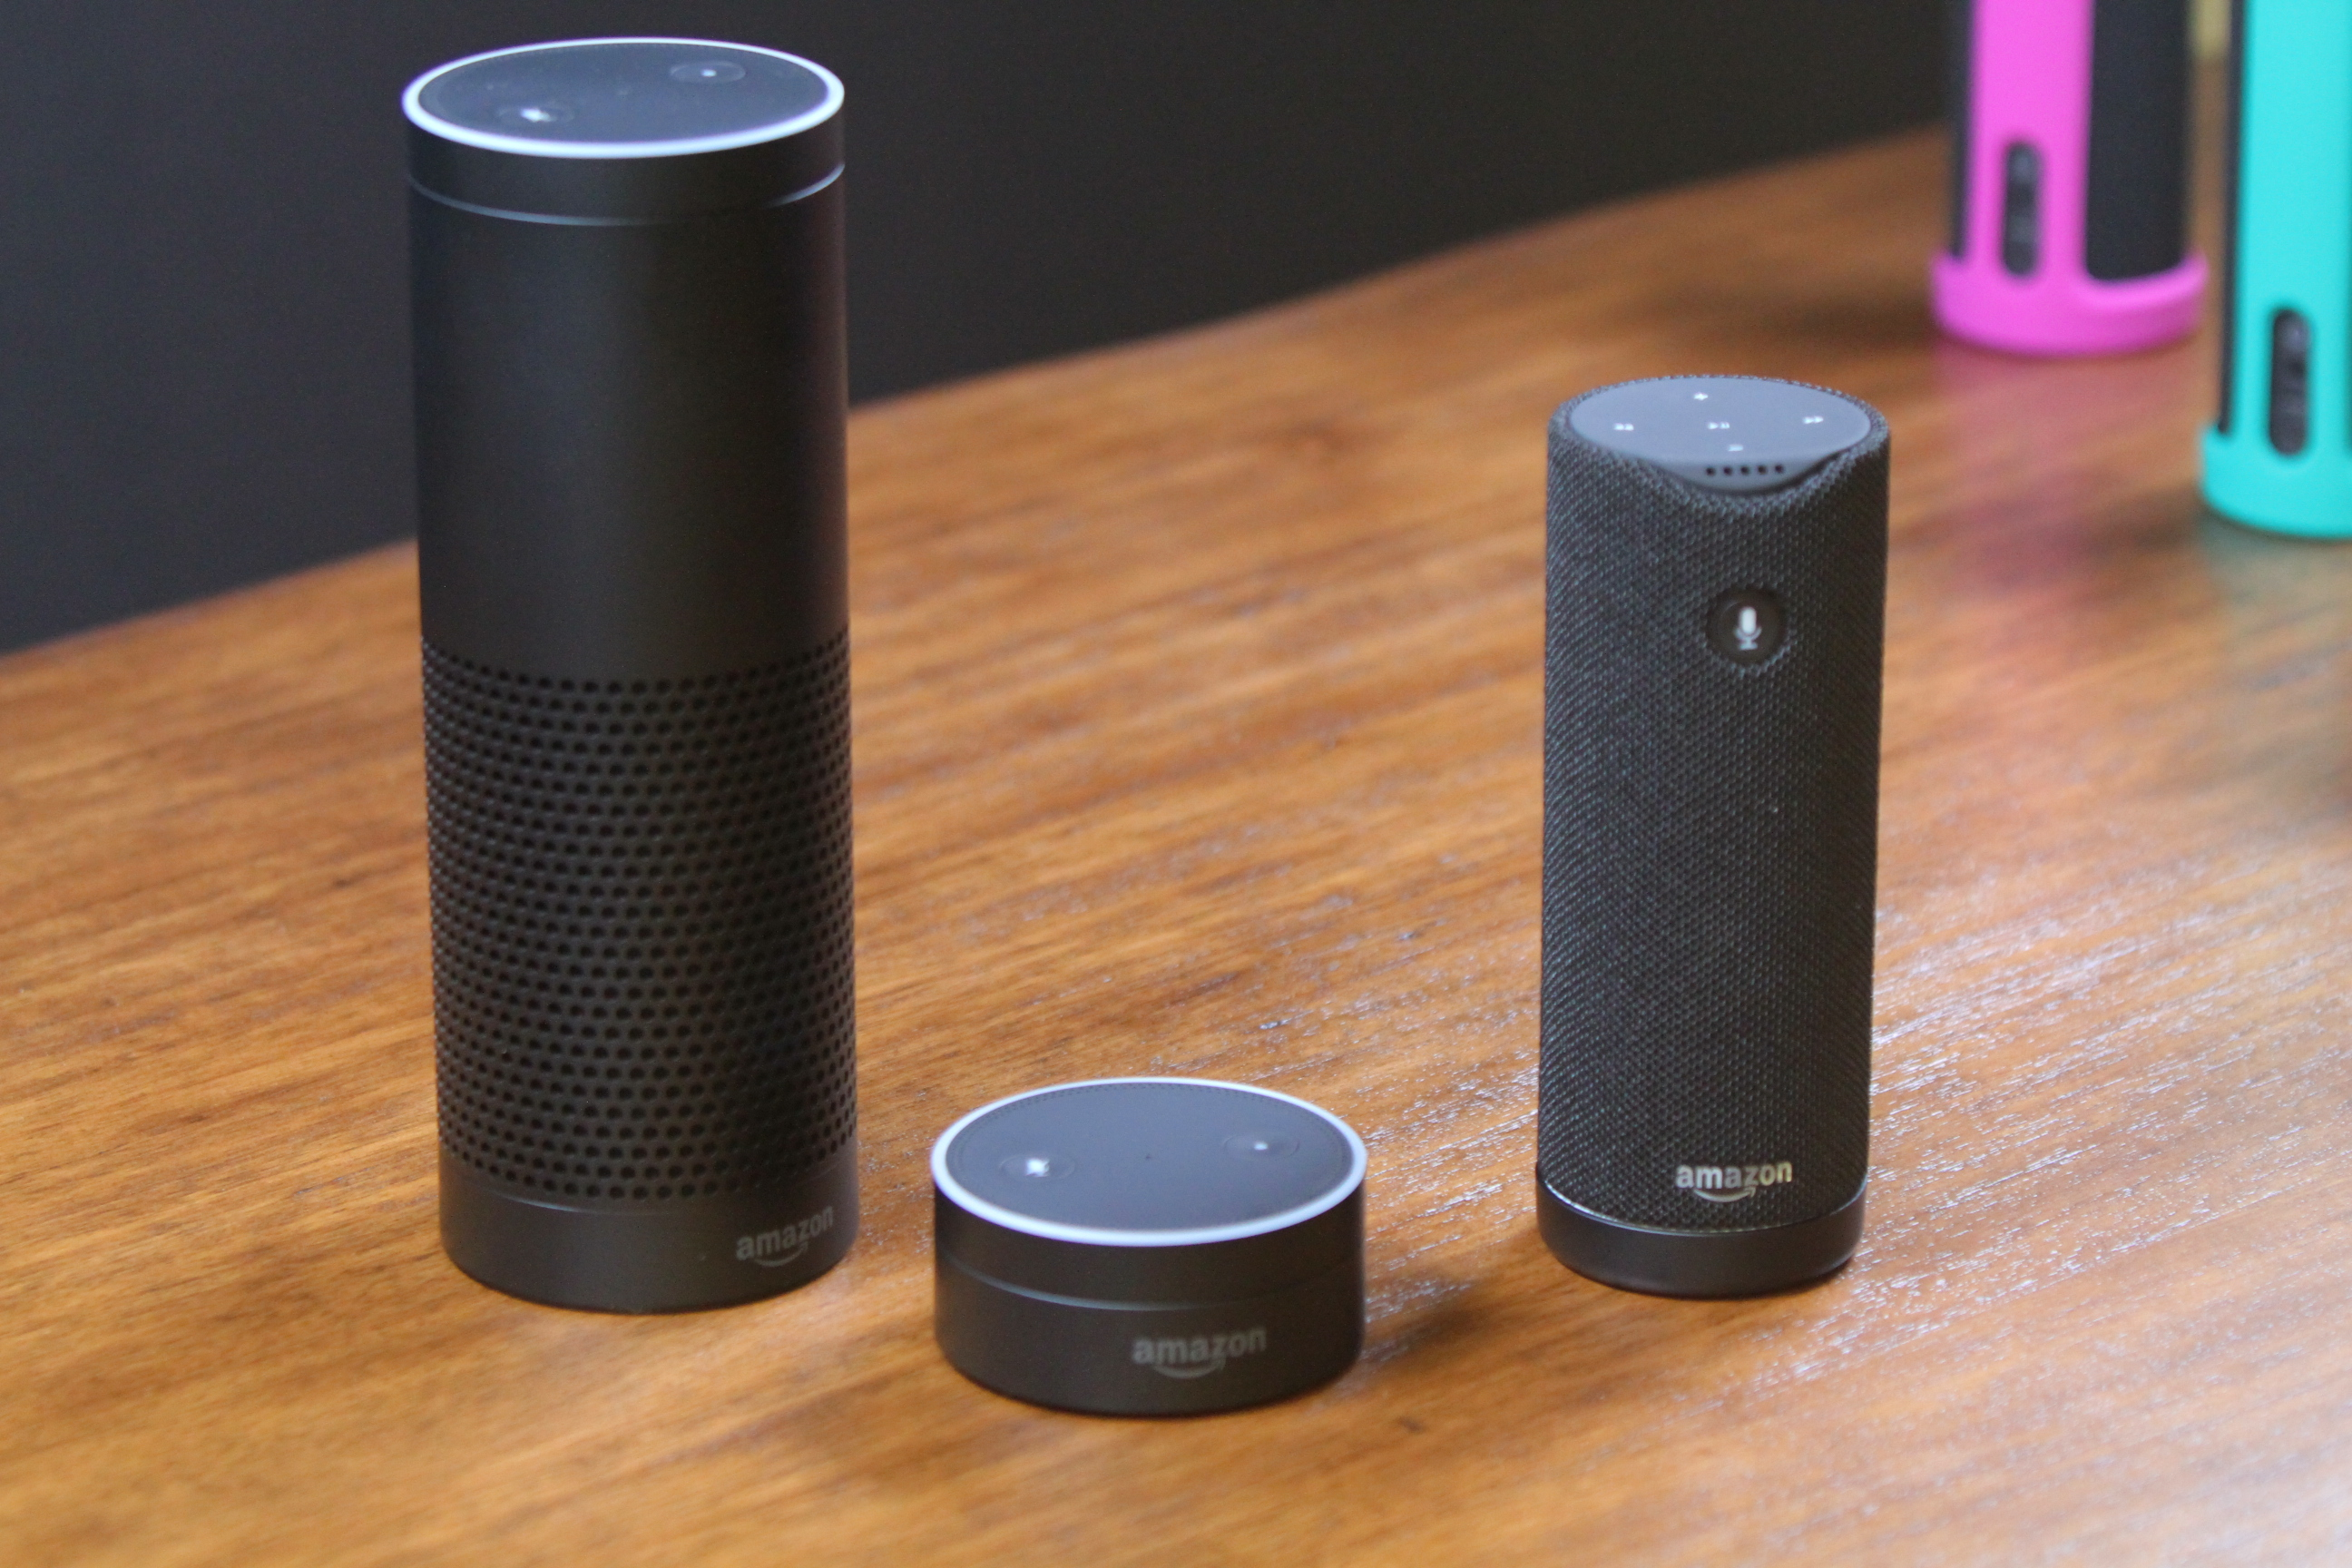 From left to right: Amazon Echo, Echo Dot, and Tap